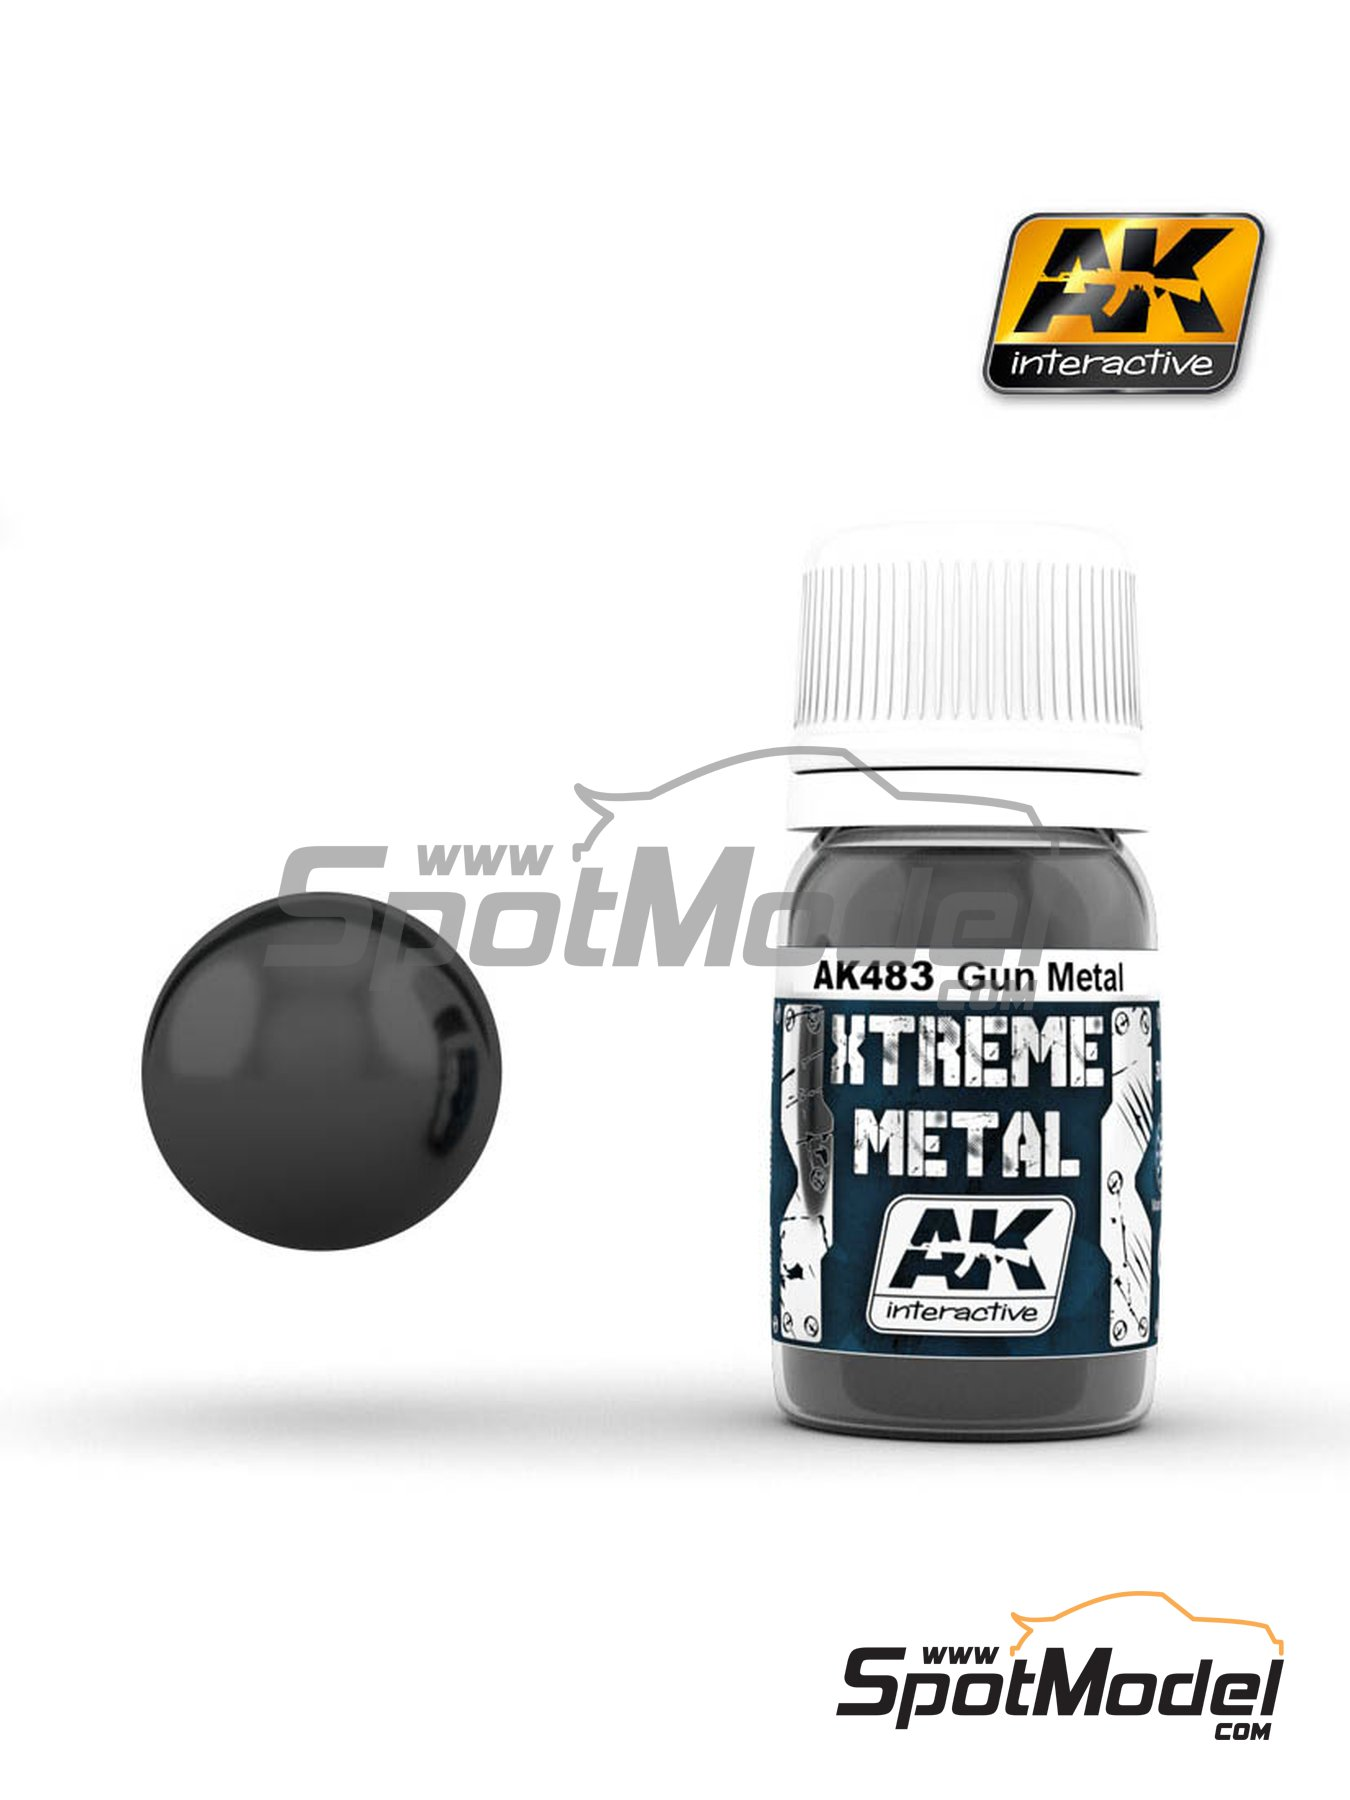 Gun metal | Xtreme metal paint manufactured by AK Interactive (ref. AK-483) image